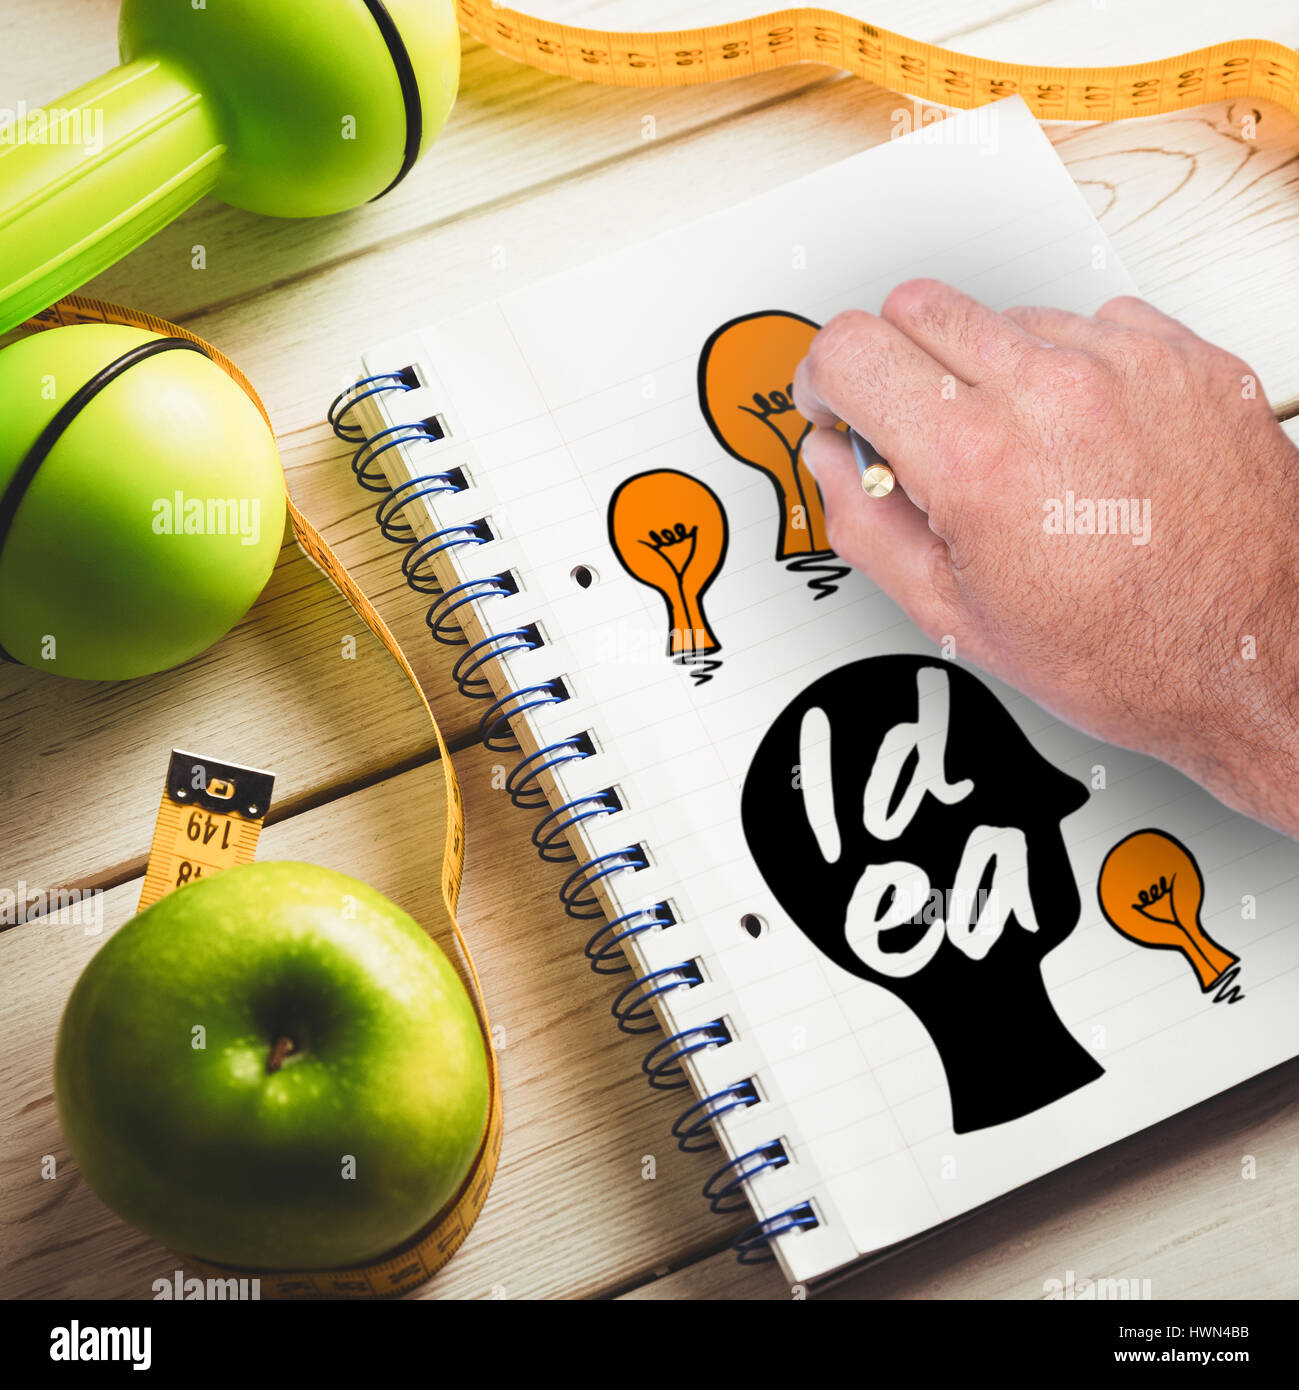 Cropped image of hand holding a pencil against notepad with indicators of healthy lifestyle - Stock Image